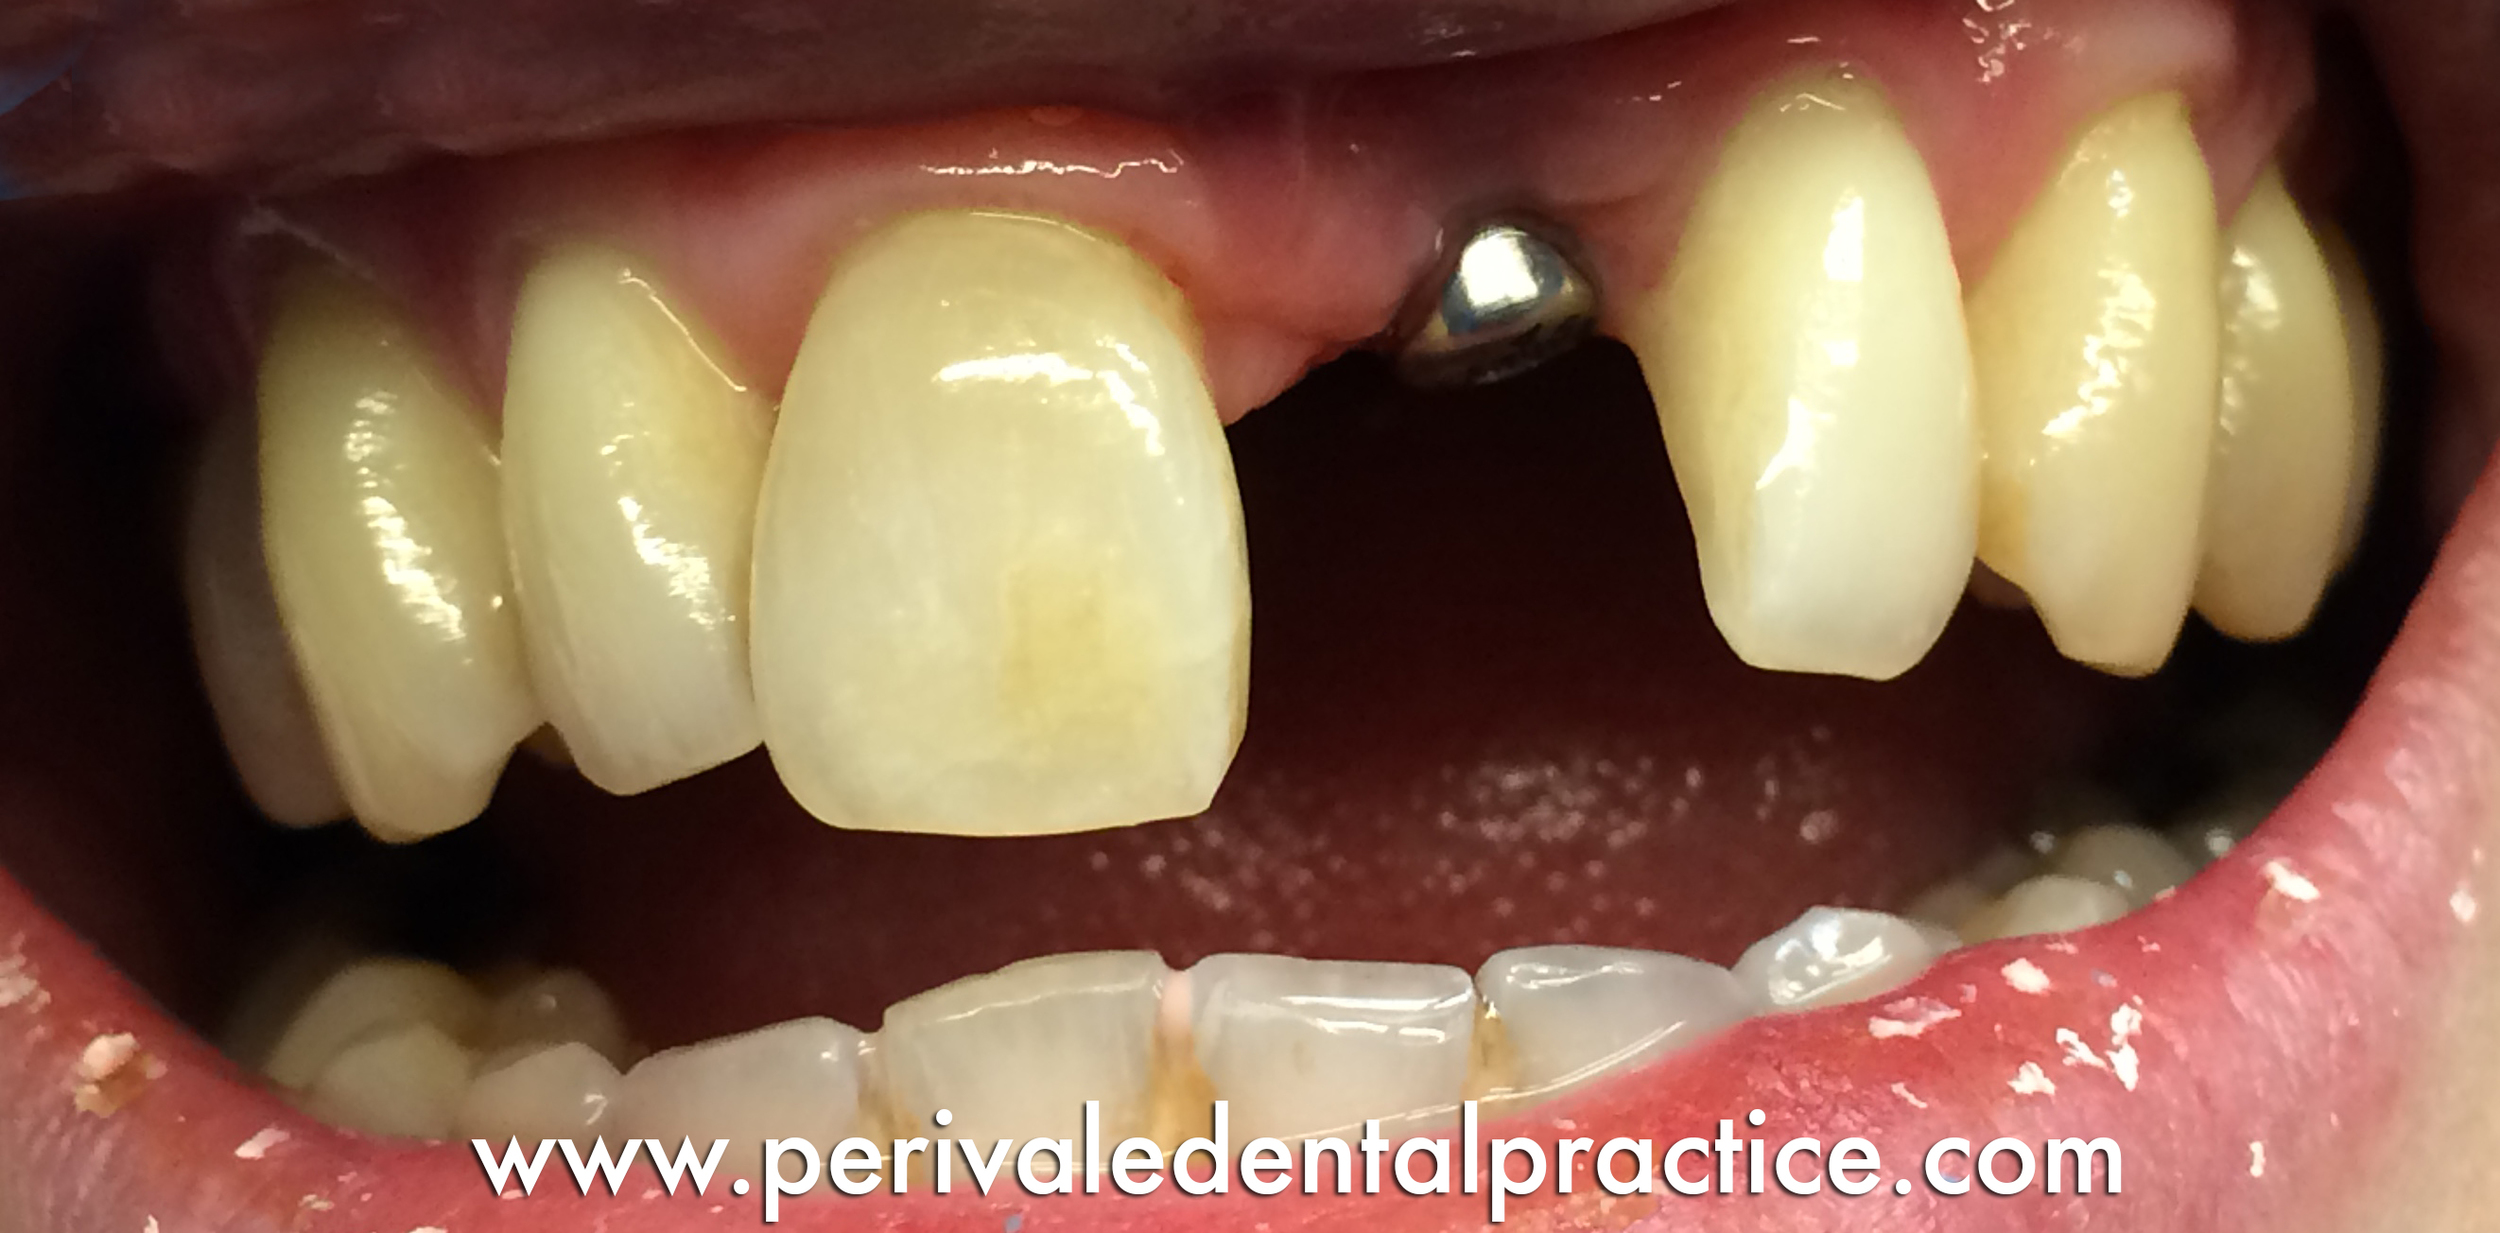 Before treatment: Missing central incisor